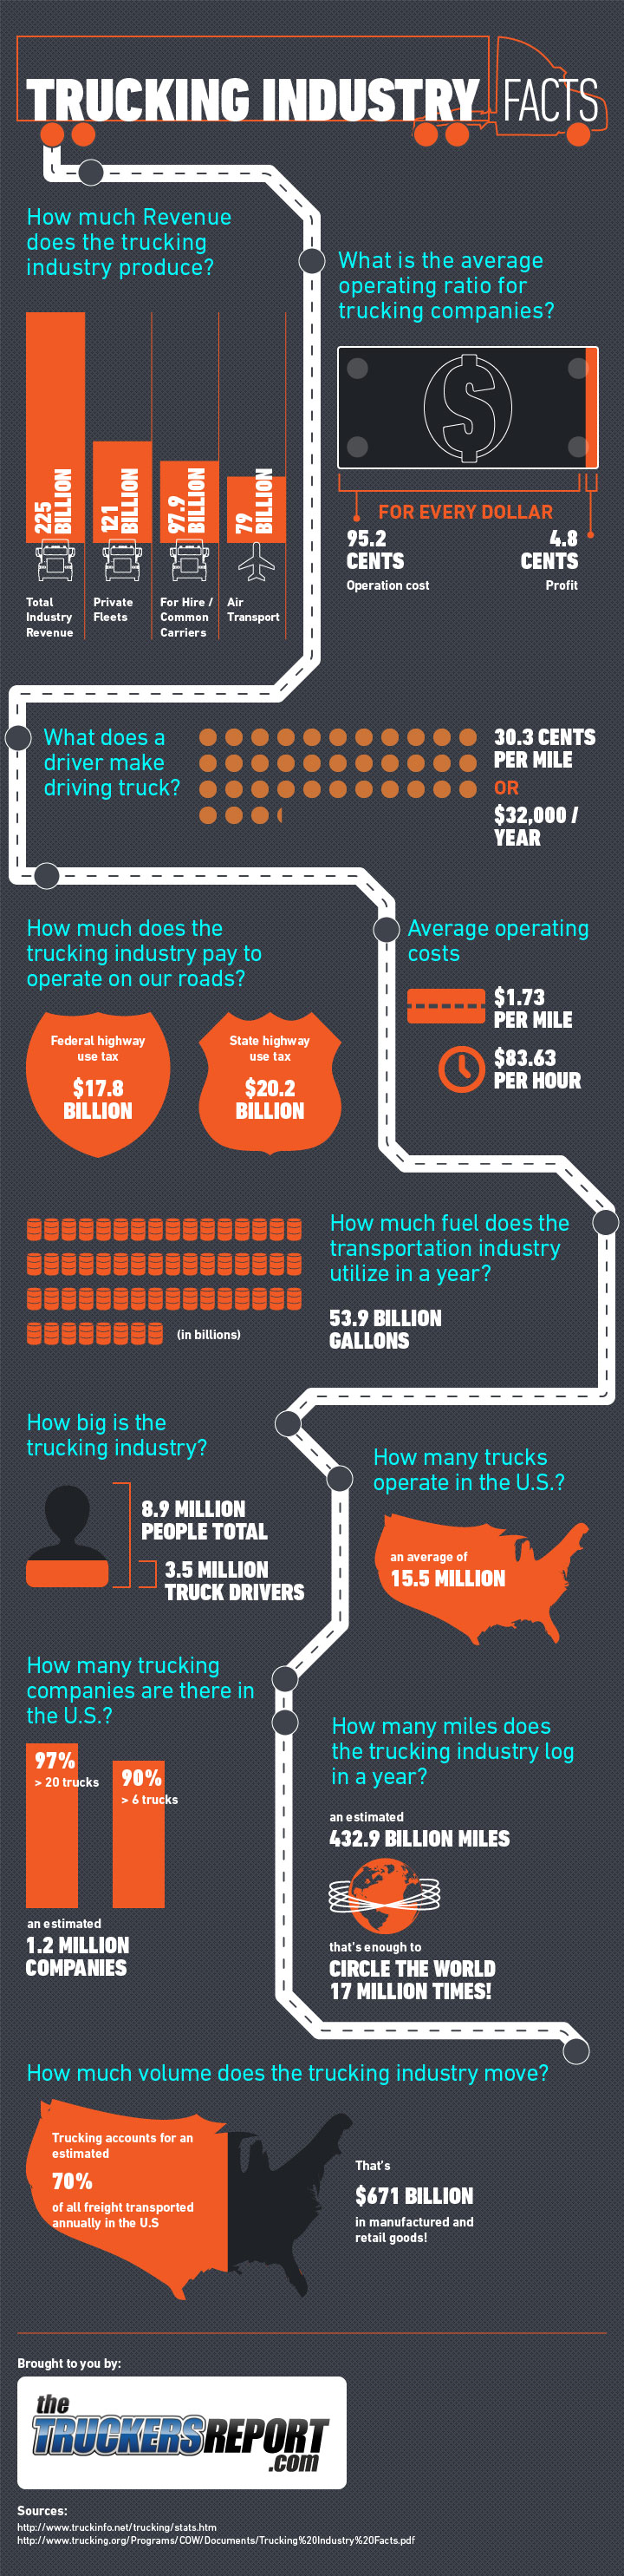 trucking-industry-facts_51e9a77369c0c